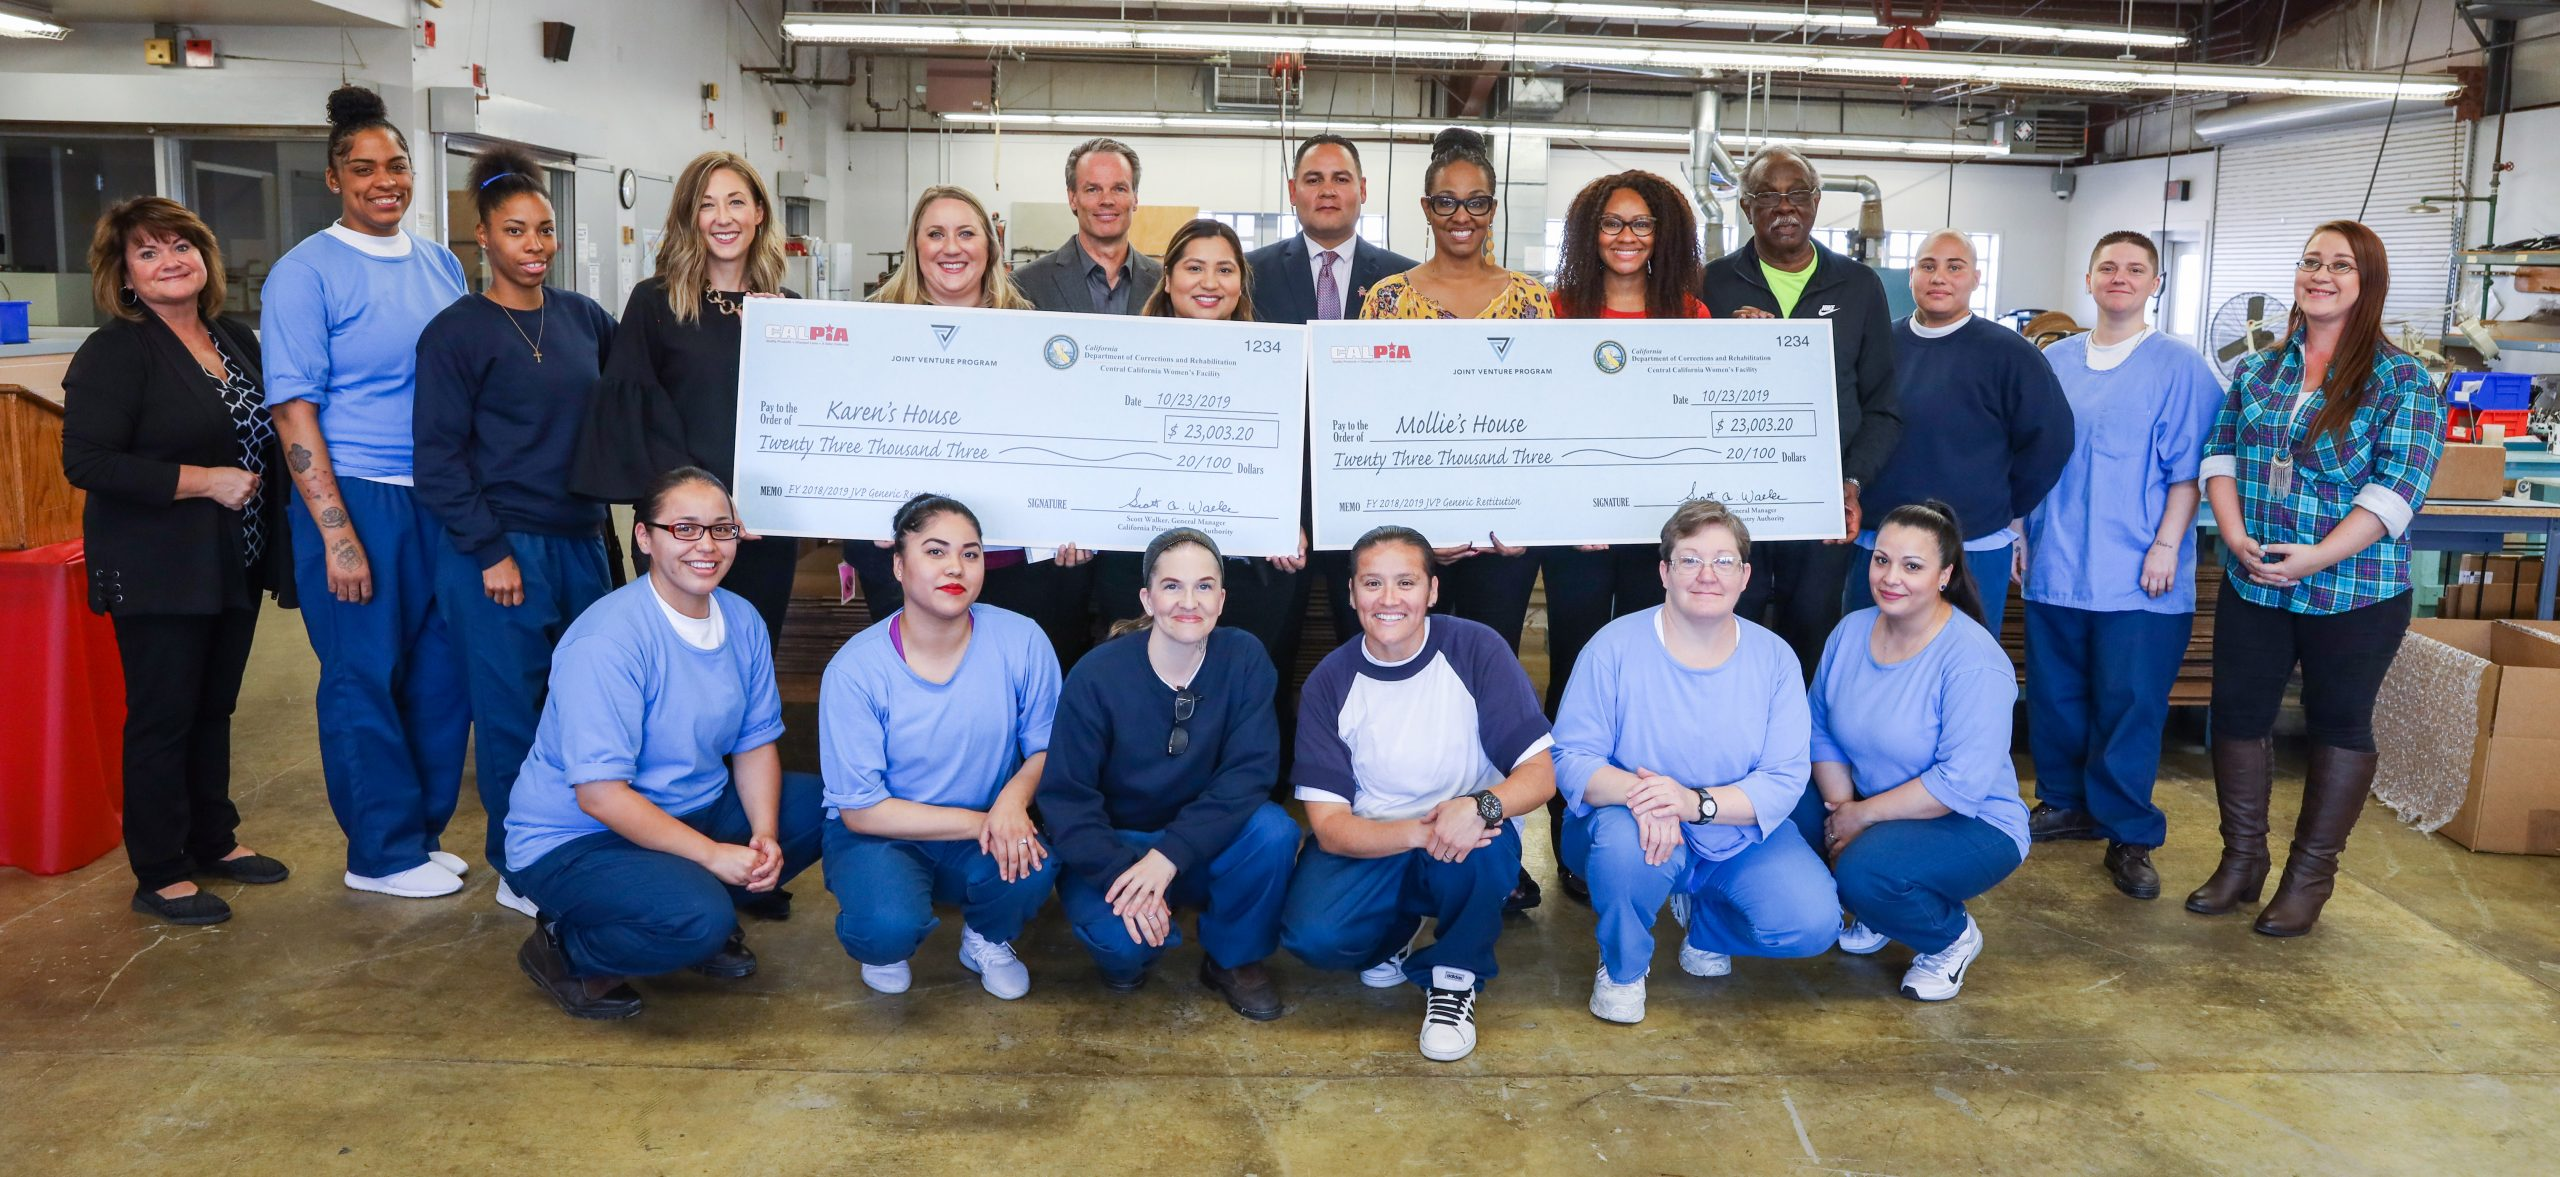 Female inmates and others pose with large oversized checks.